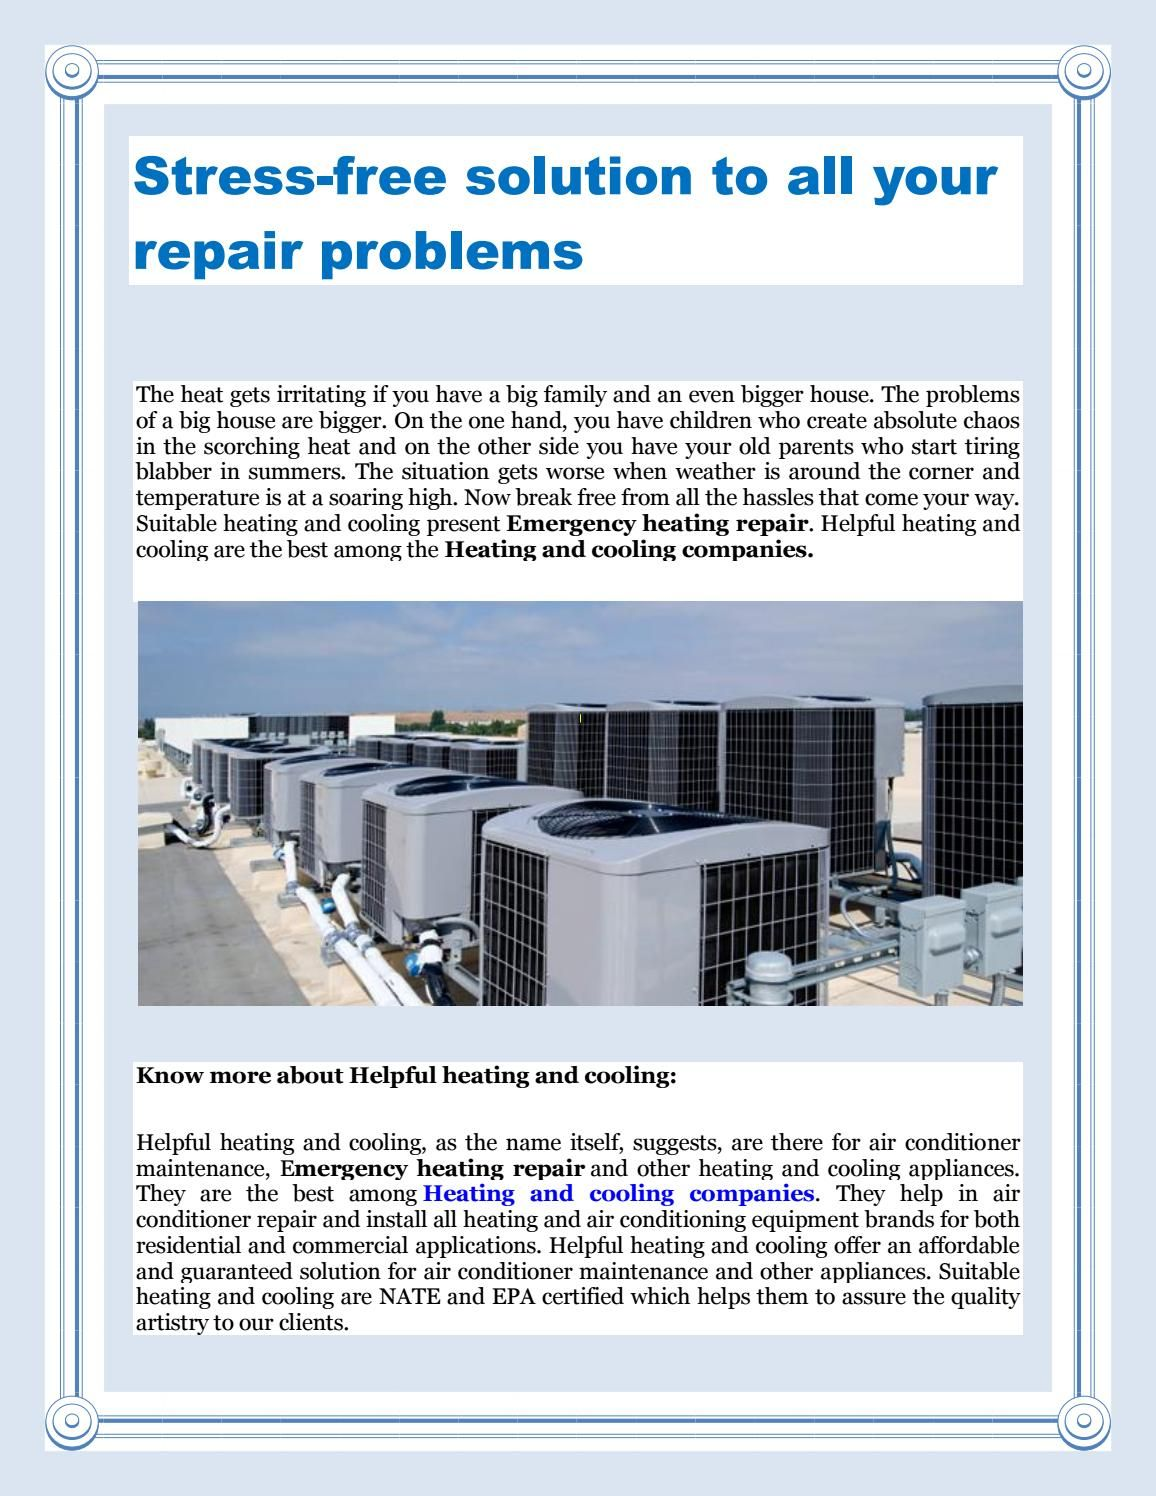 Stressfree solution to all your repair problems Heating